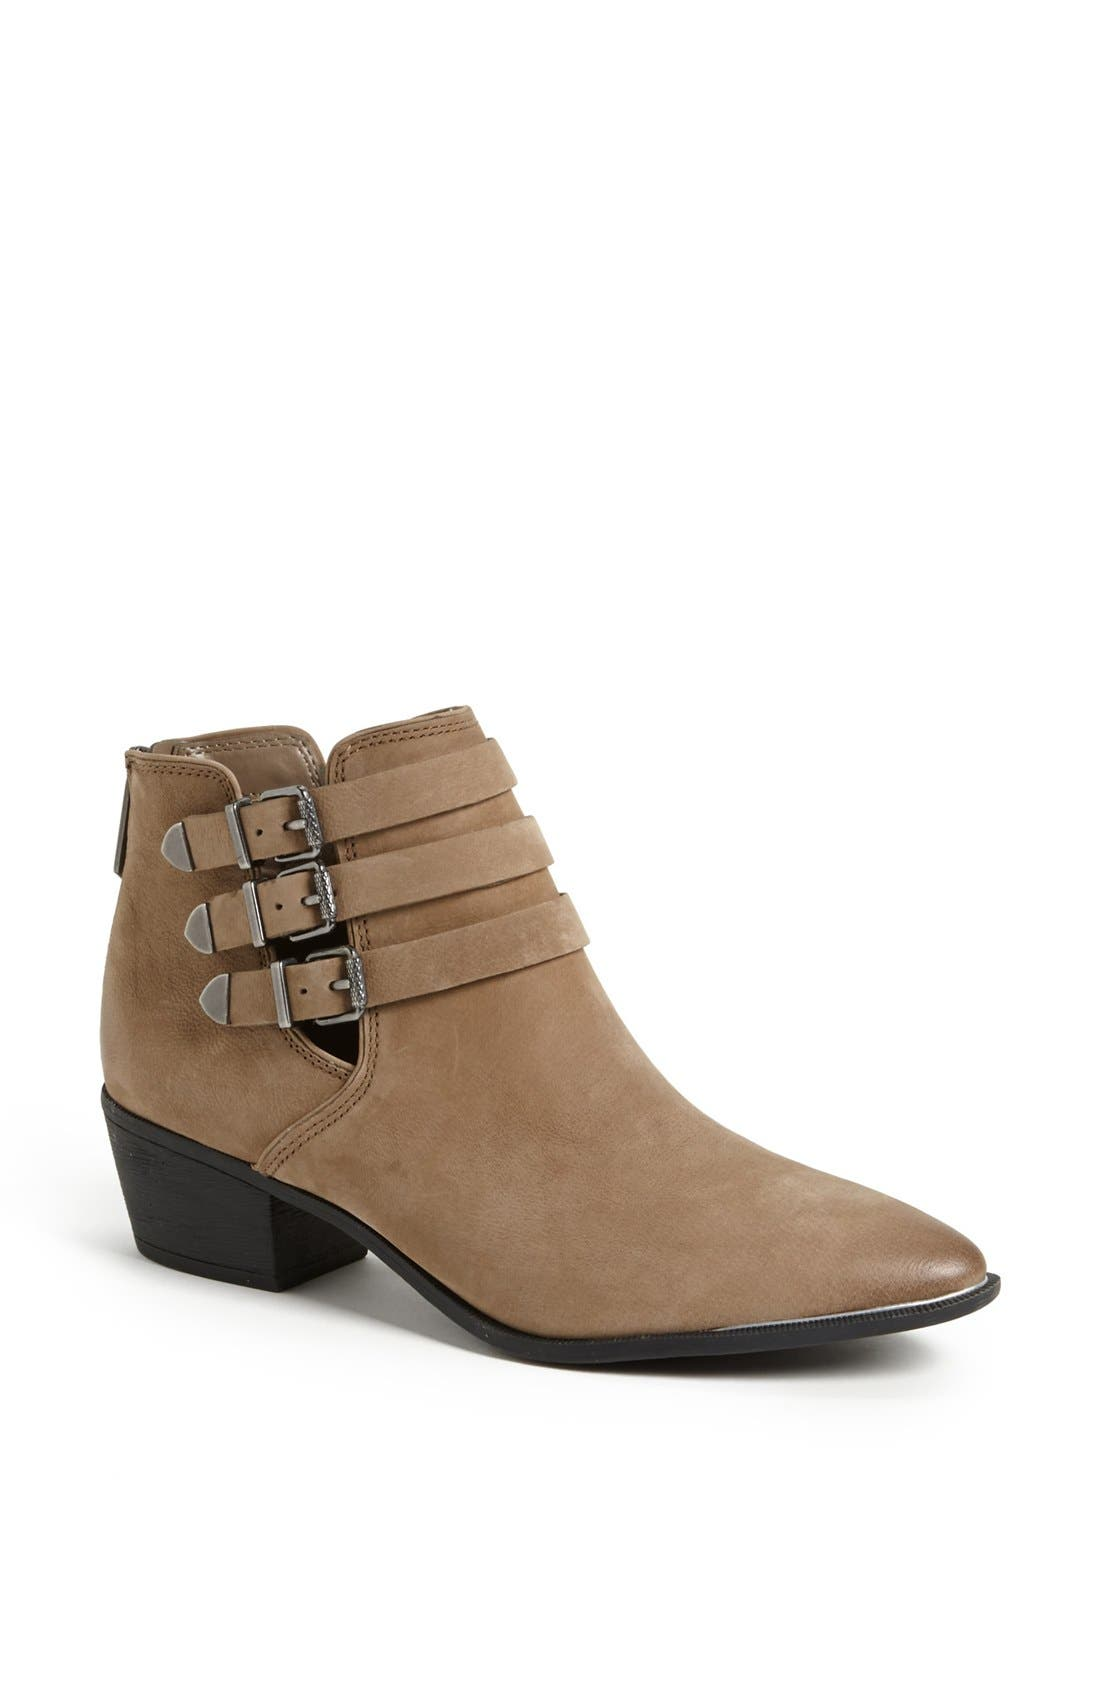 Alternate Image 1 Selected - Circus by Sam Edelman 'Harper'  Bootie